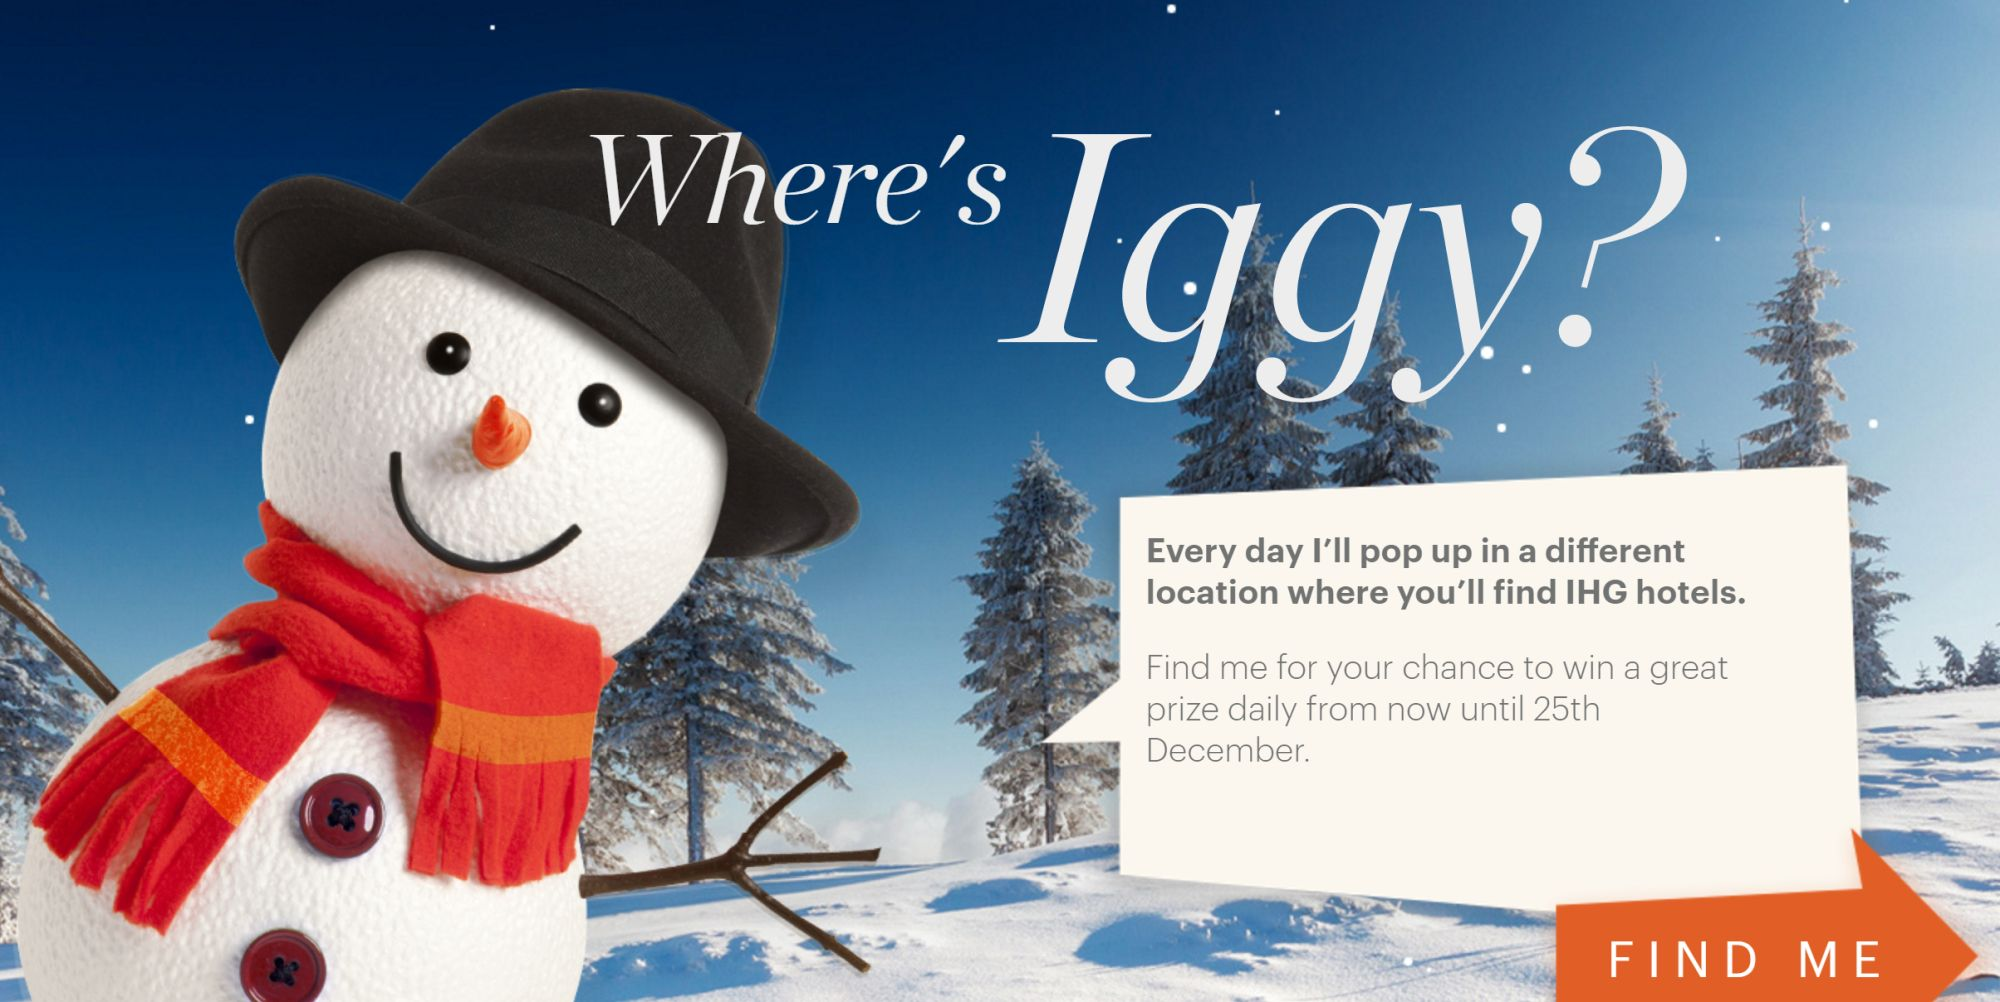 IHG Adventscalendar: Free 2500 Points and Other Prizes